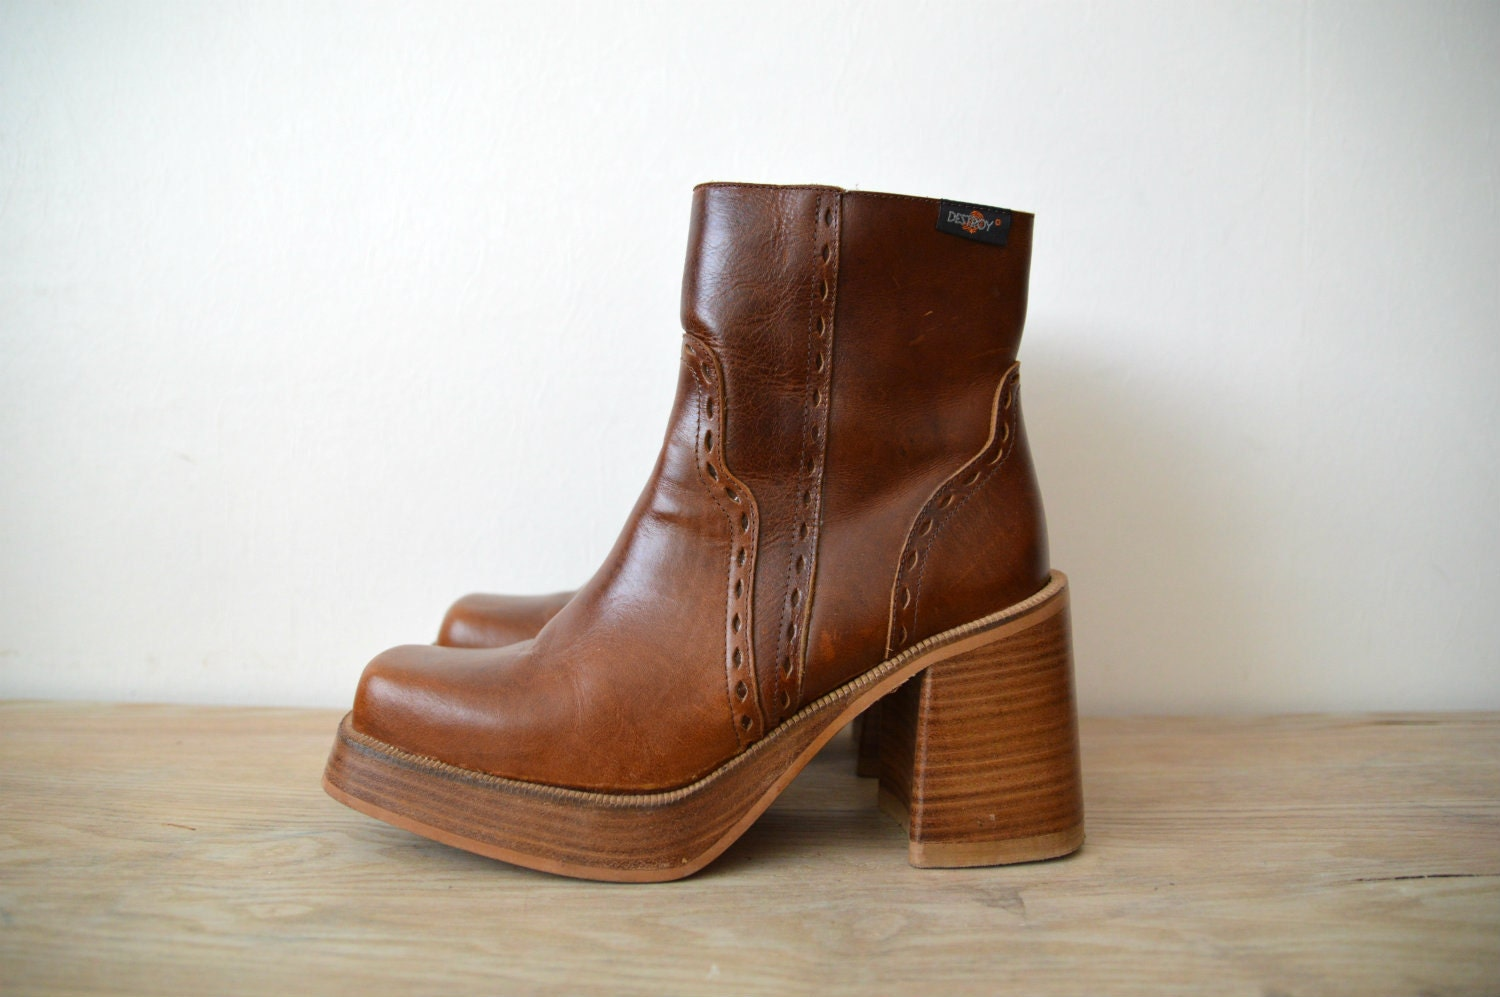 90s leather platform ankle destroy boots size by sonjasusanna